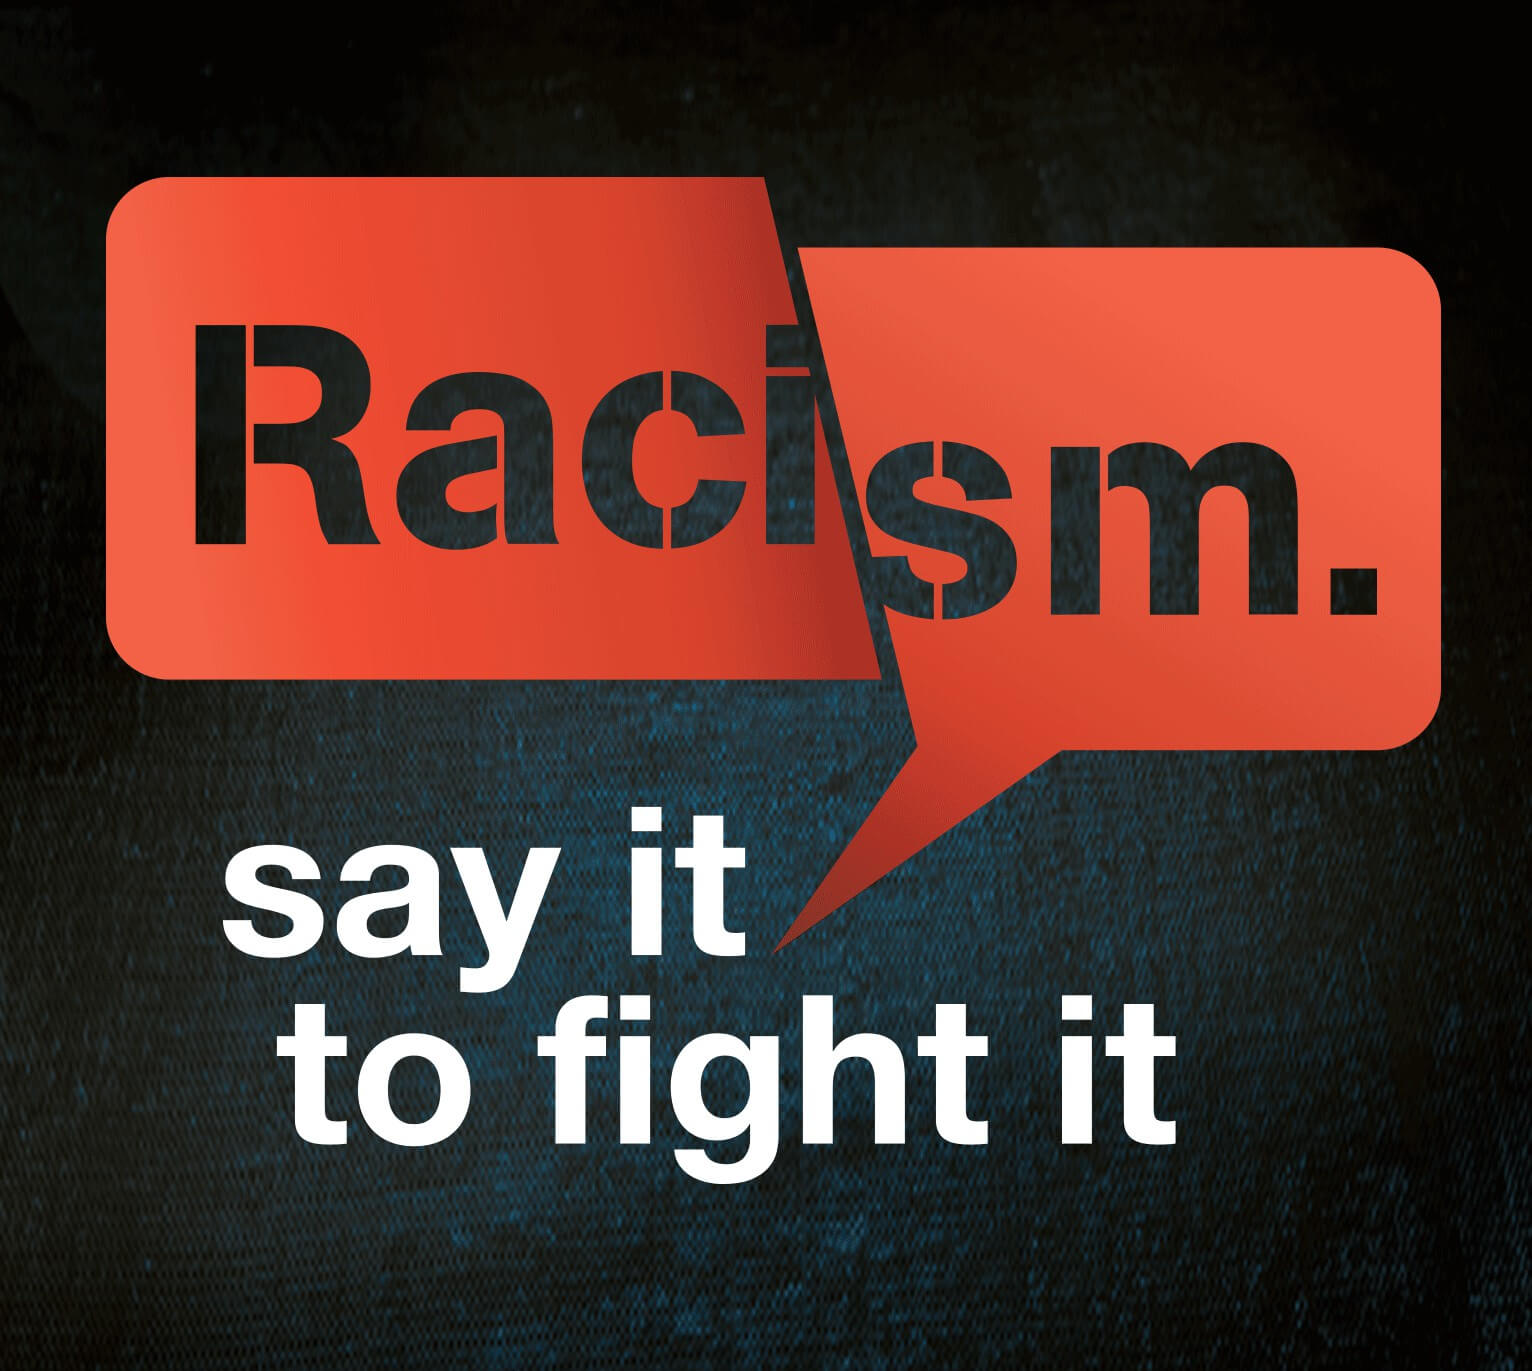 international day for the elimination racial discrimination hd